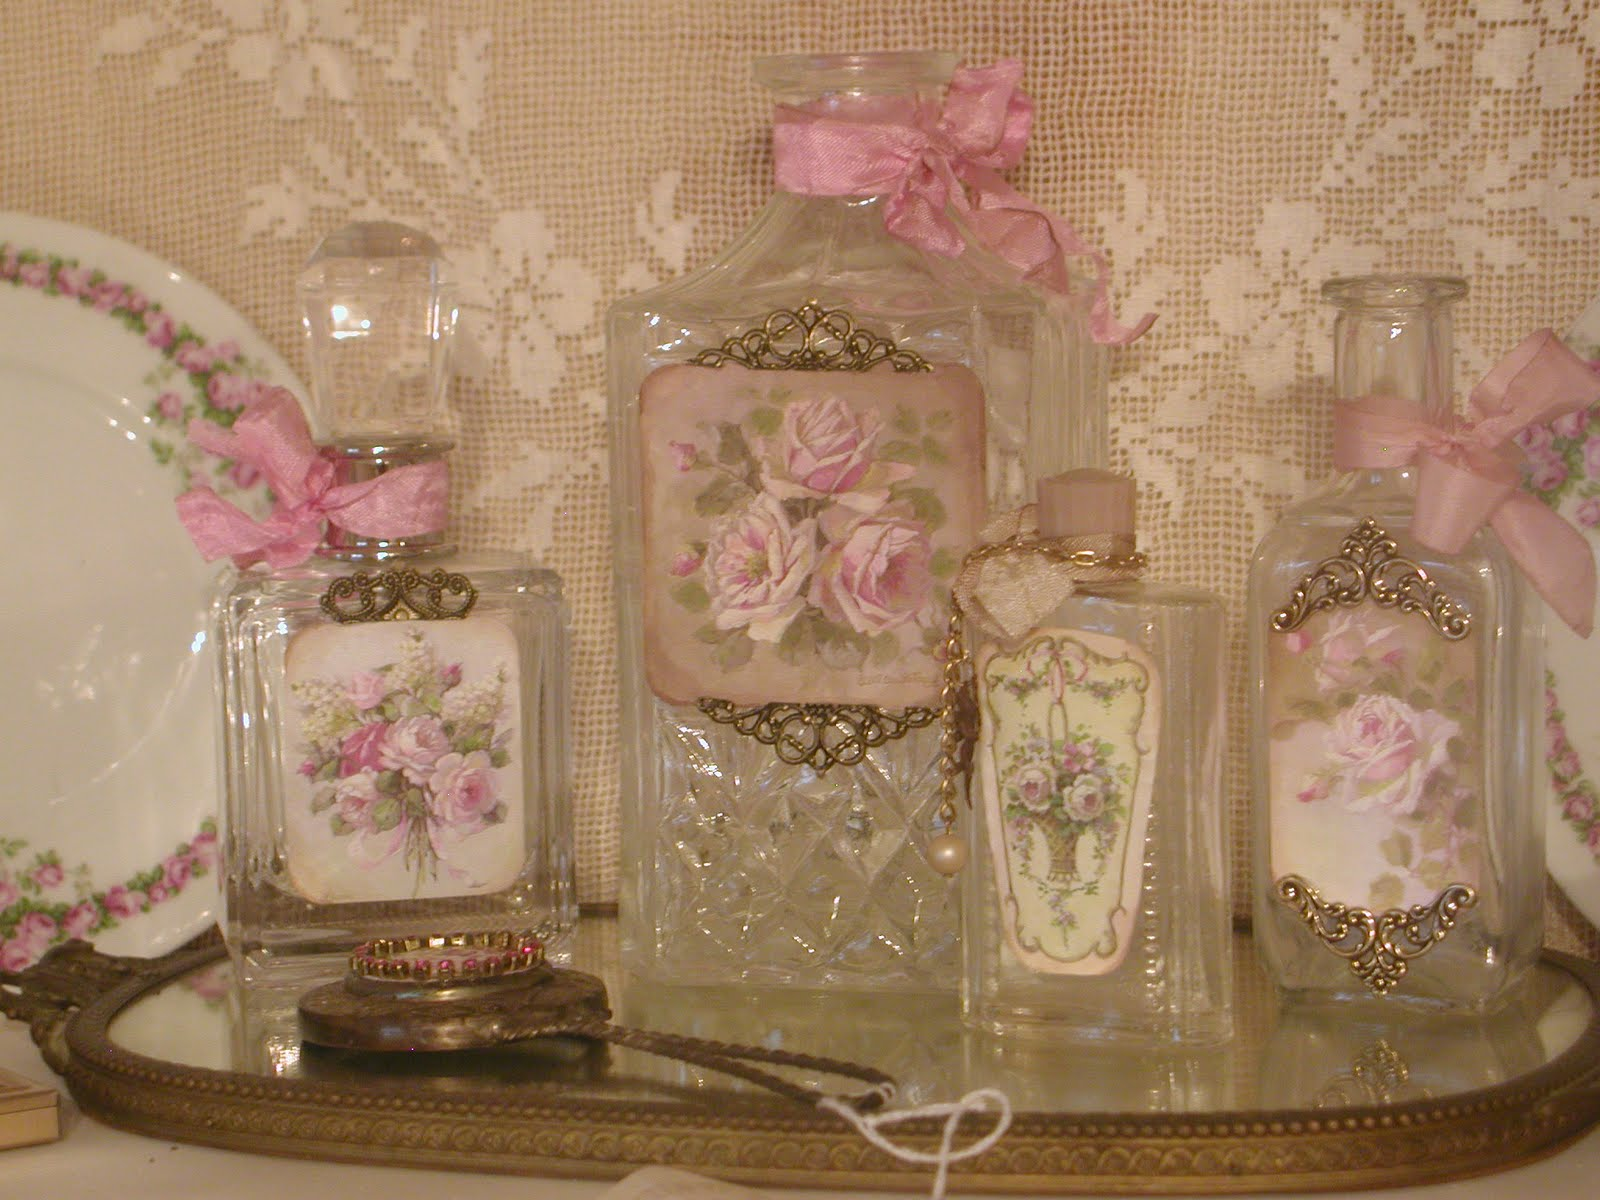 Shabby S: Chateau De Fleurs: French Style Perfume Bottles